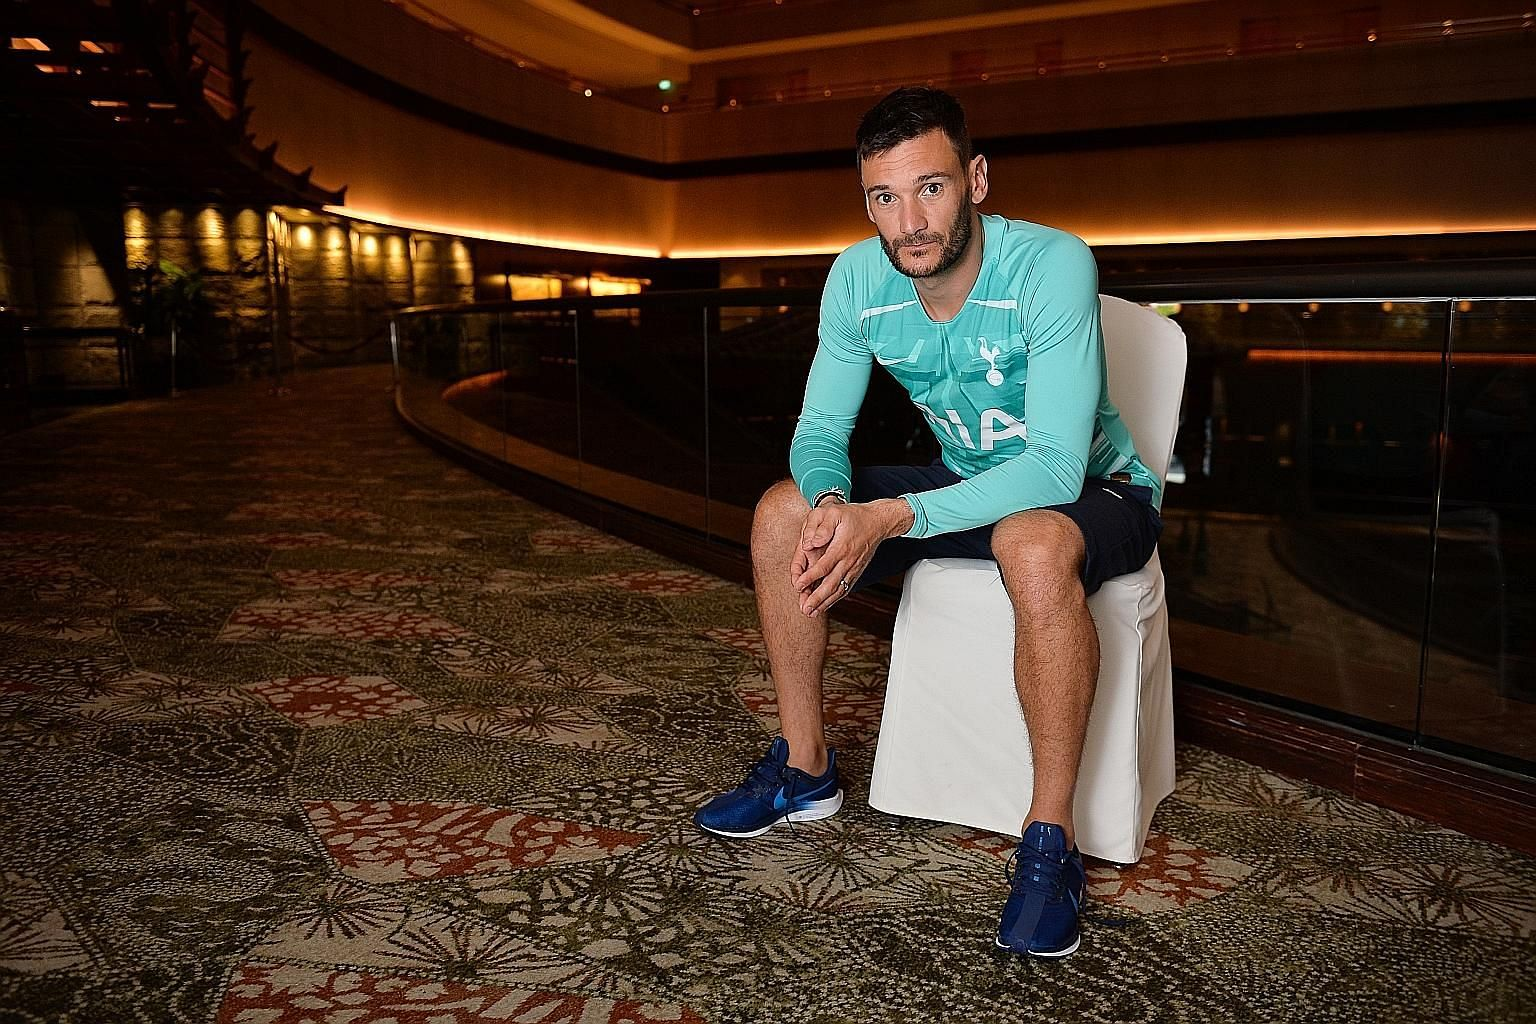 France captain Hugo Lloris is sure Spurs can build on last season's run to their first Champions League final as they bid to end an 11-year silverware drought.